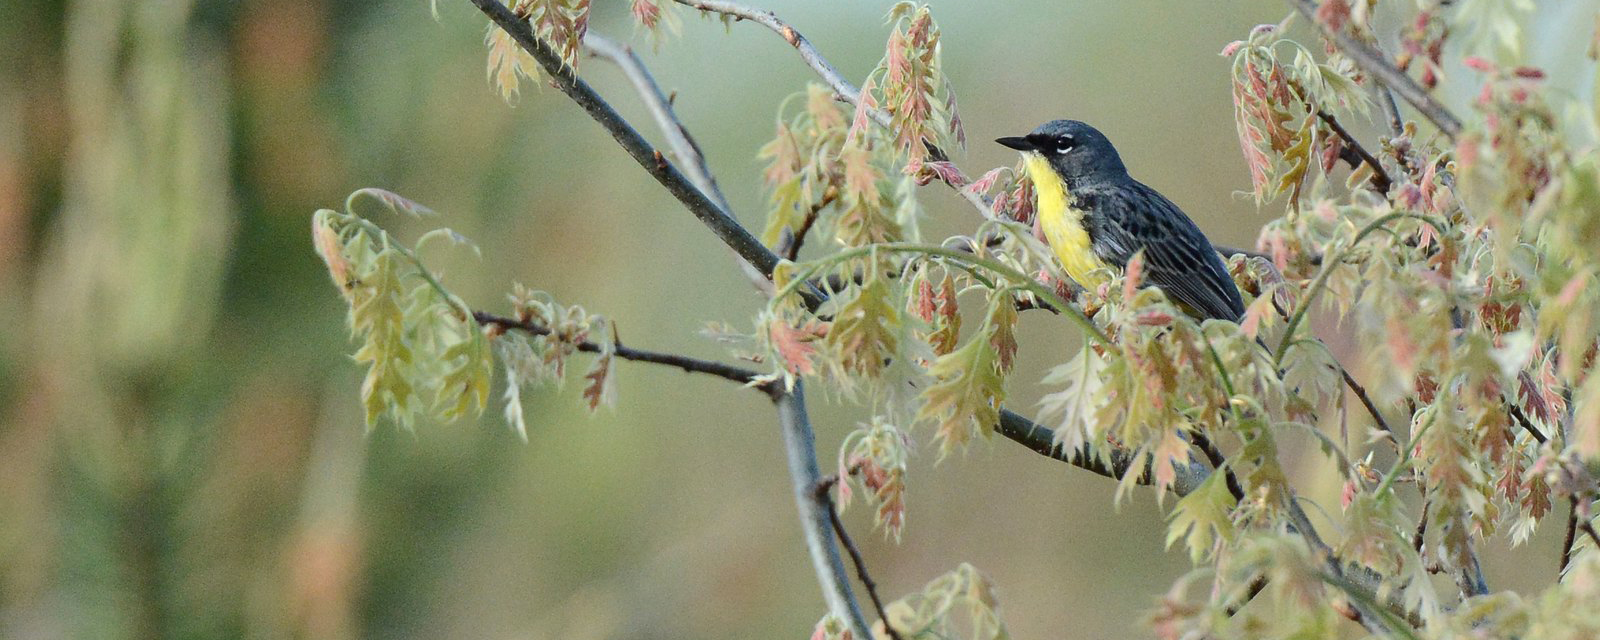 Kirtland's Warbler in Michigan